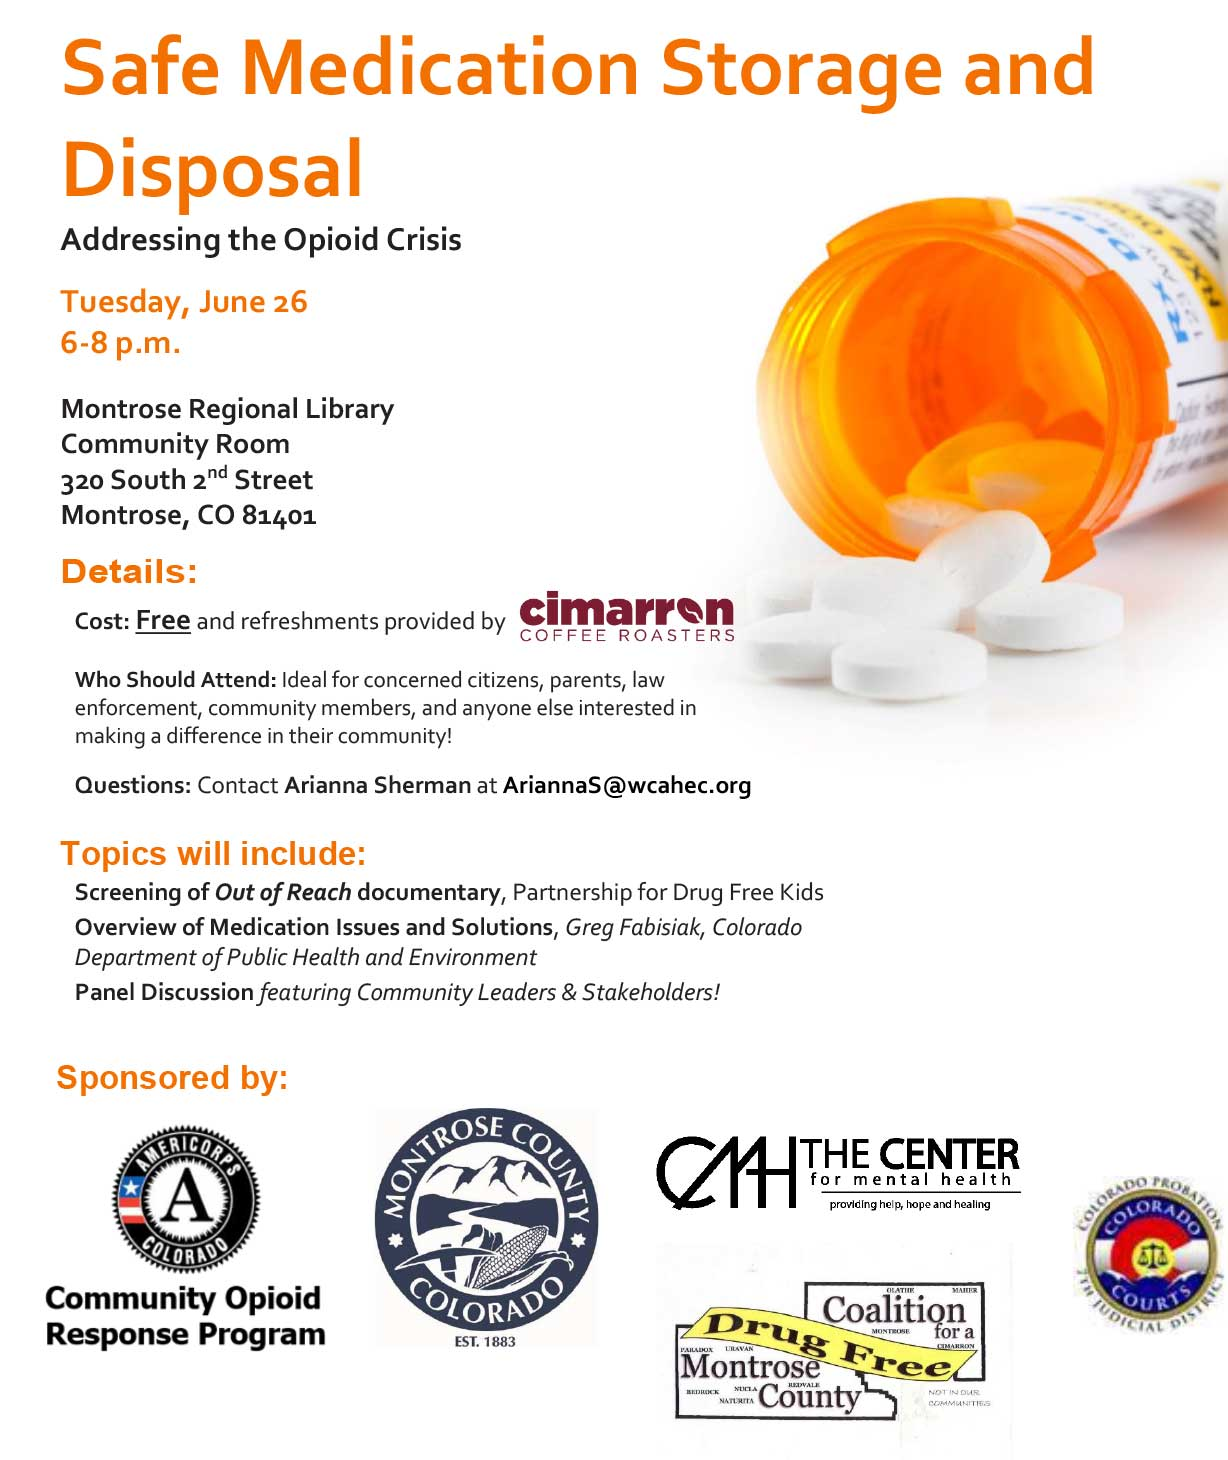 Safe-Disposal-Flyer--Montrose